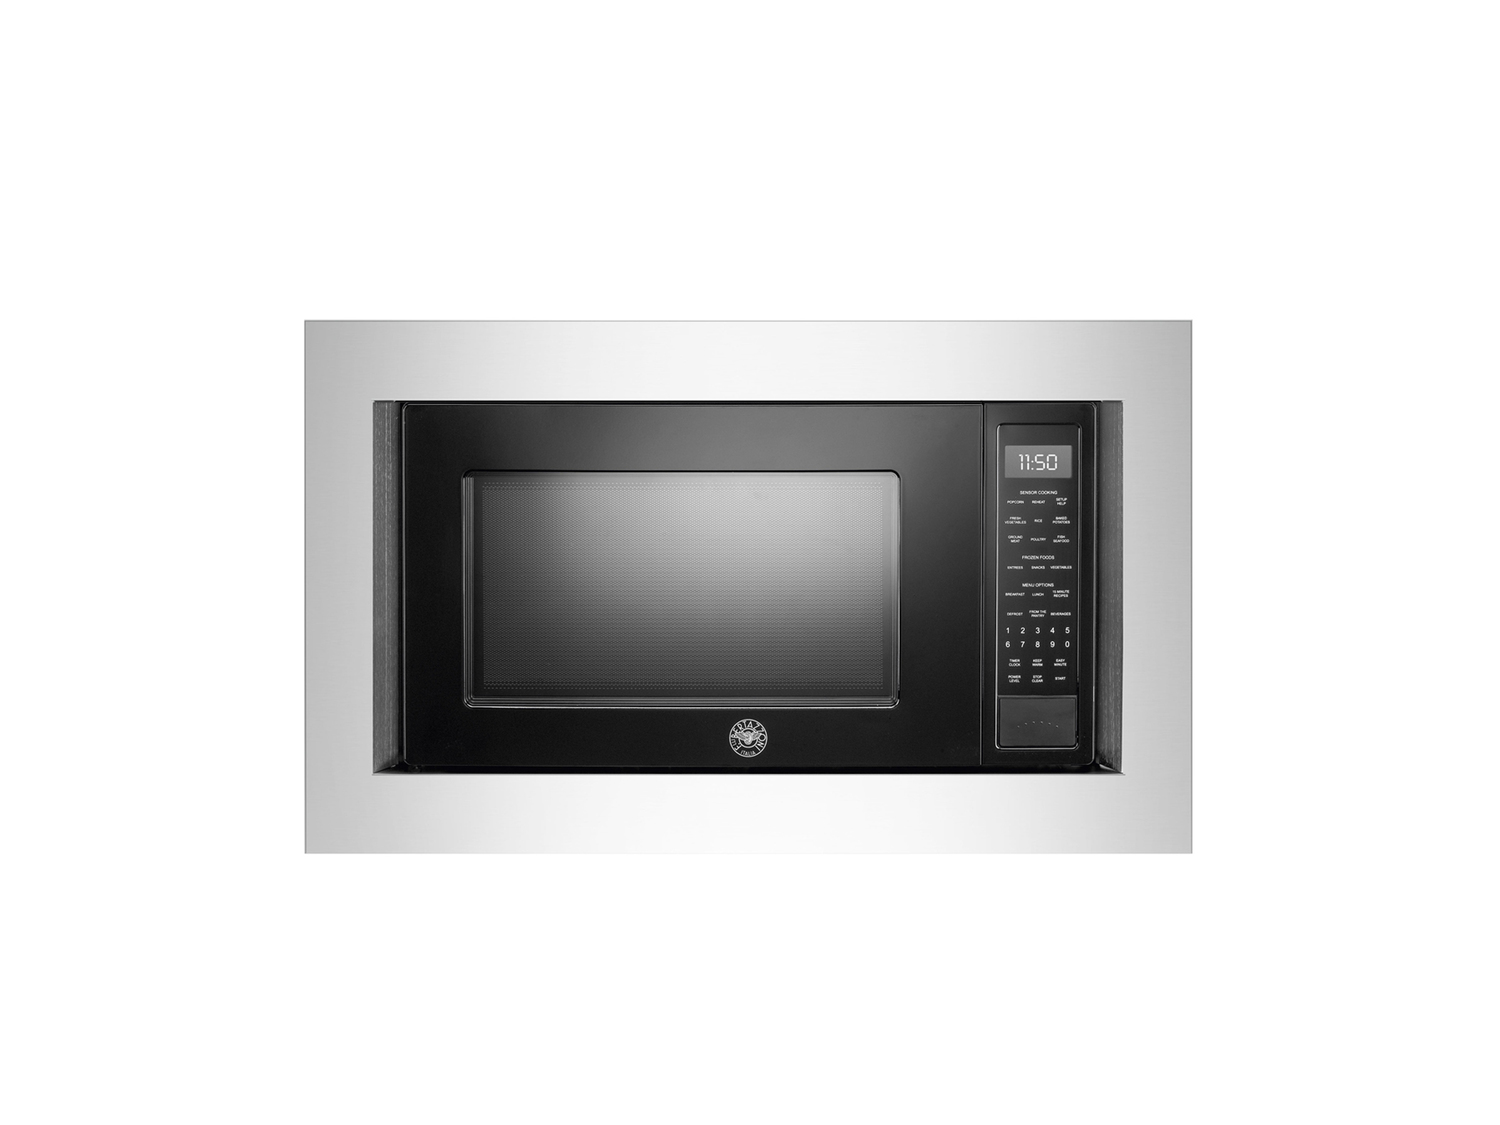 Bertazzoni30 Microwave Oven Stainless Steel